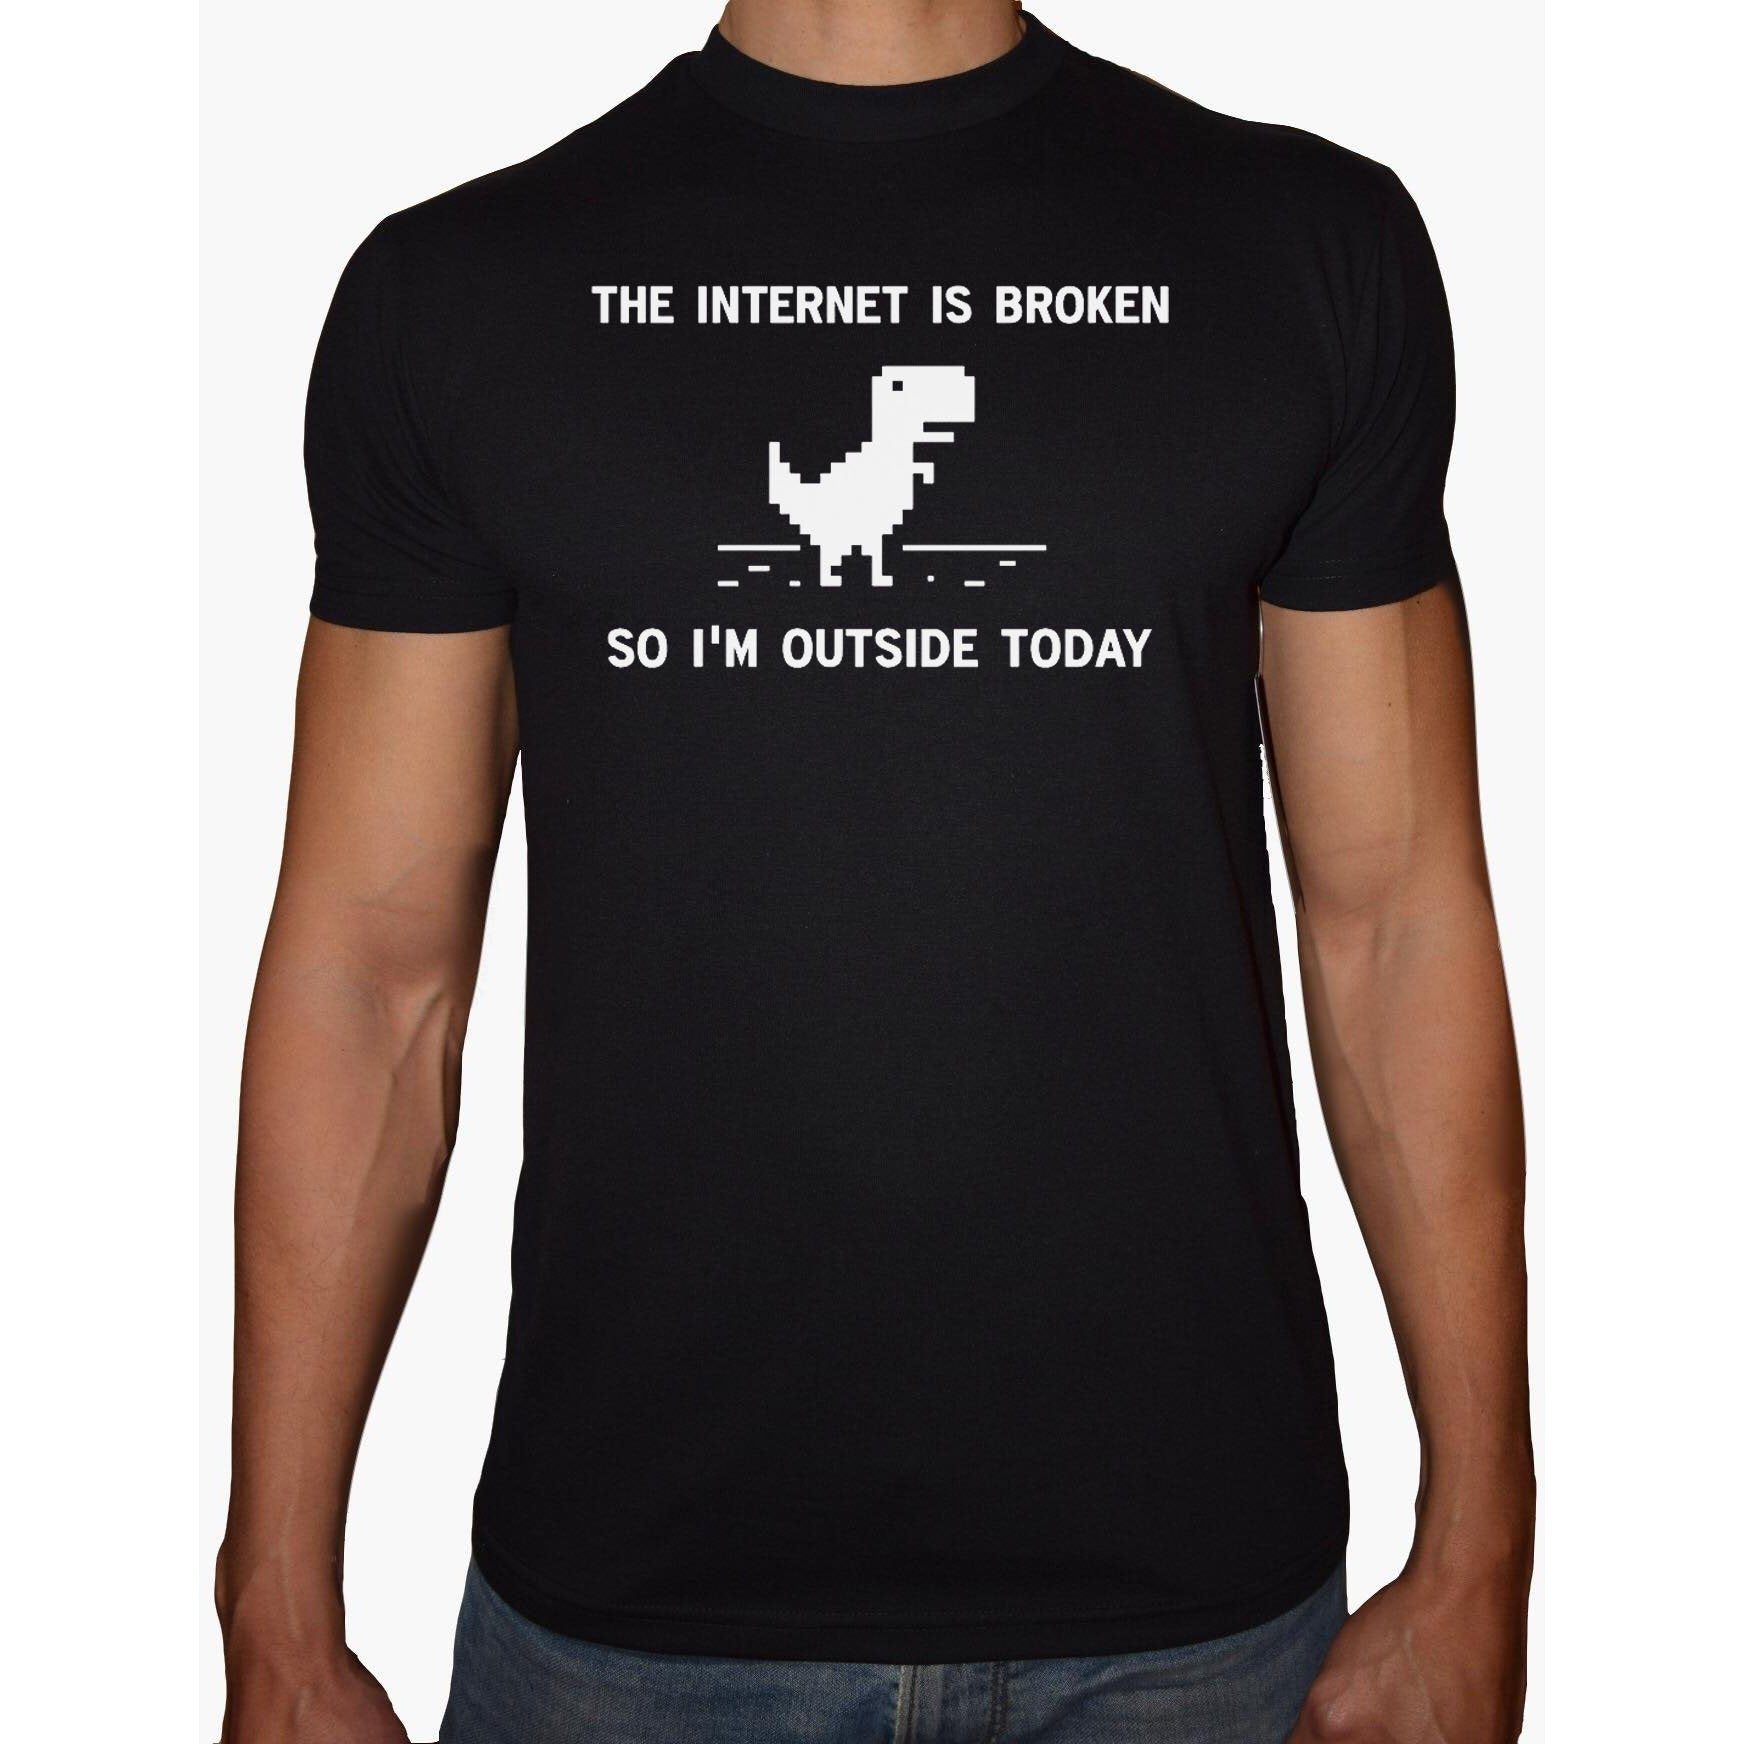 Phoenix BLACK Round Neck Printed T-Shirt Men (Internet is broken)